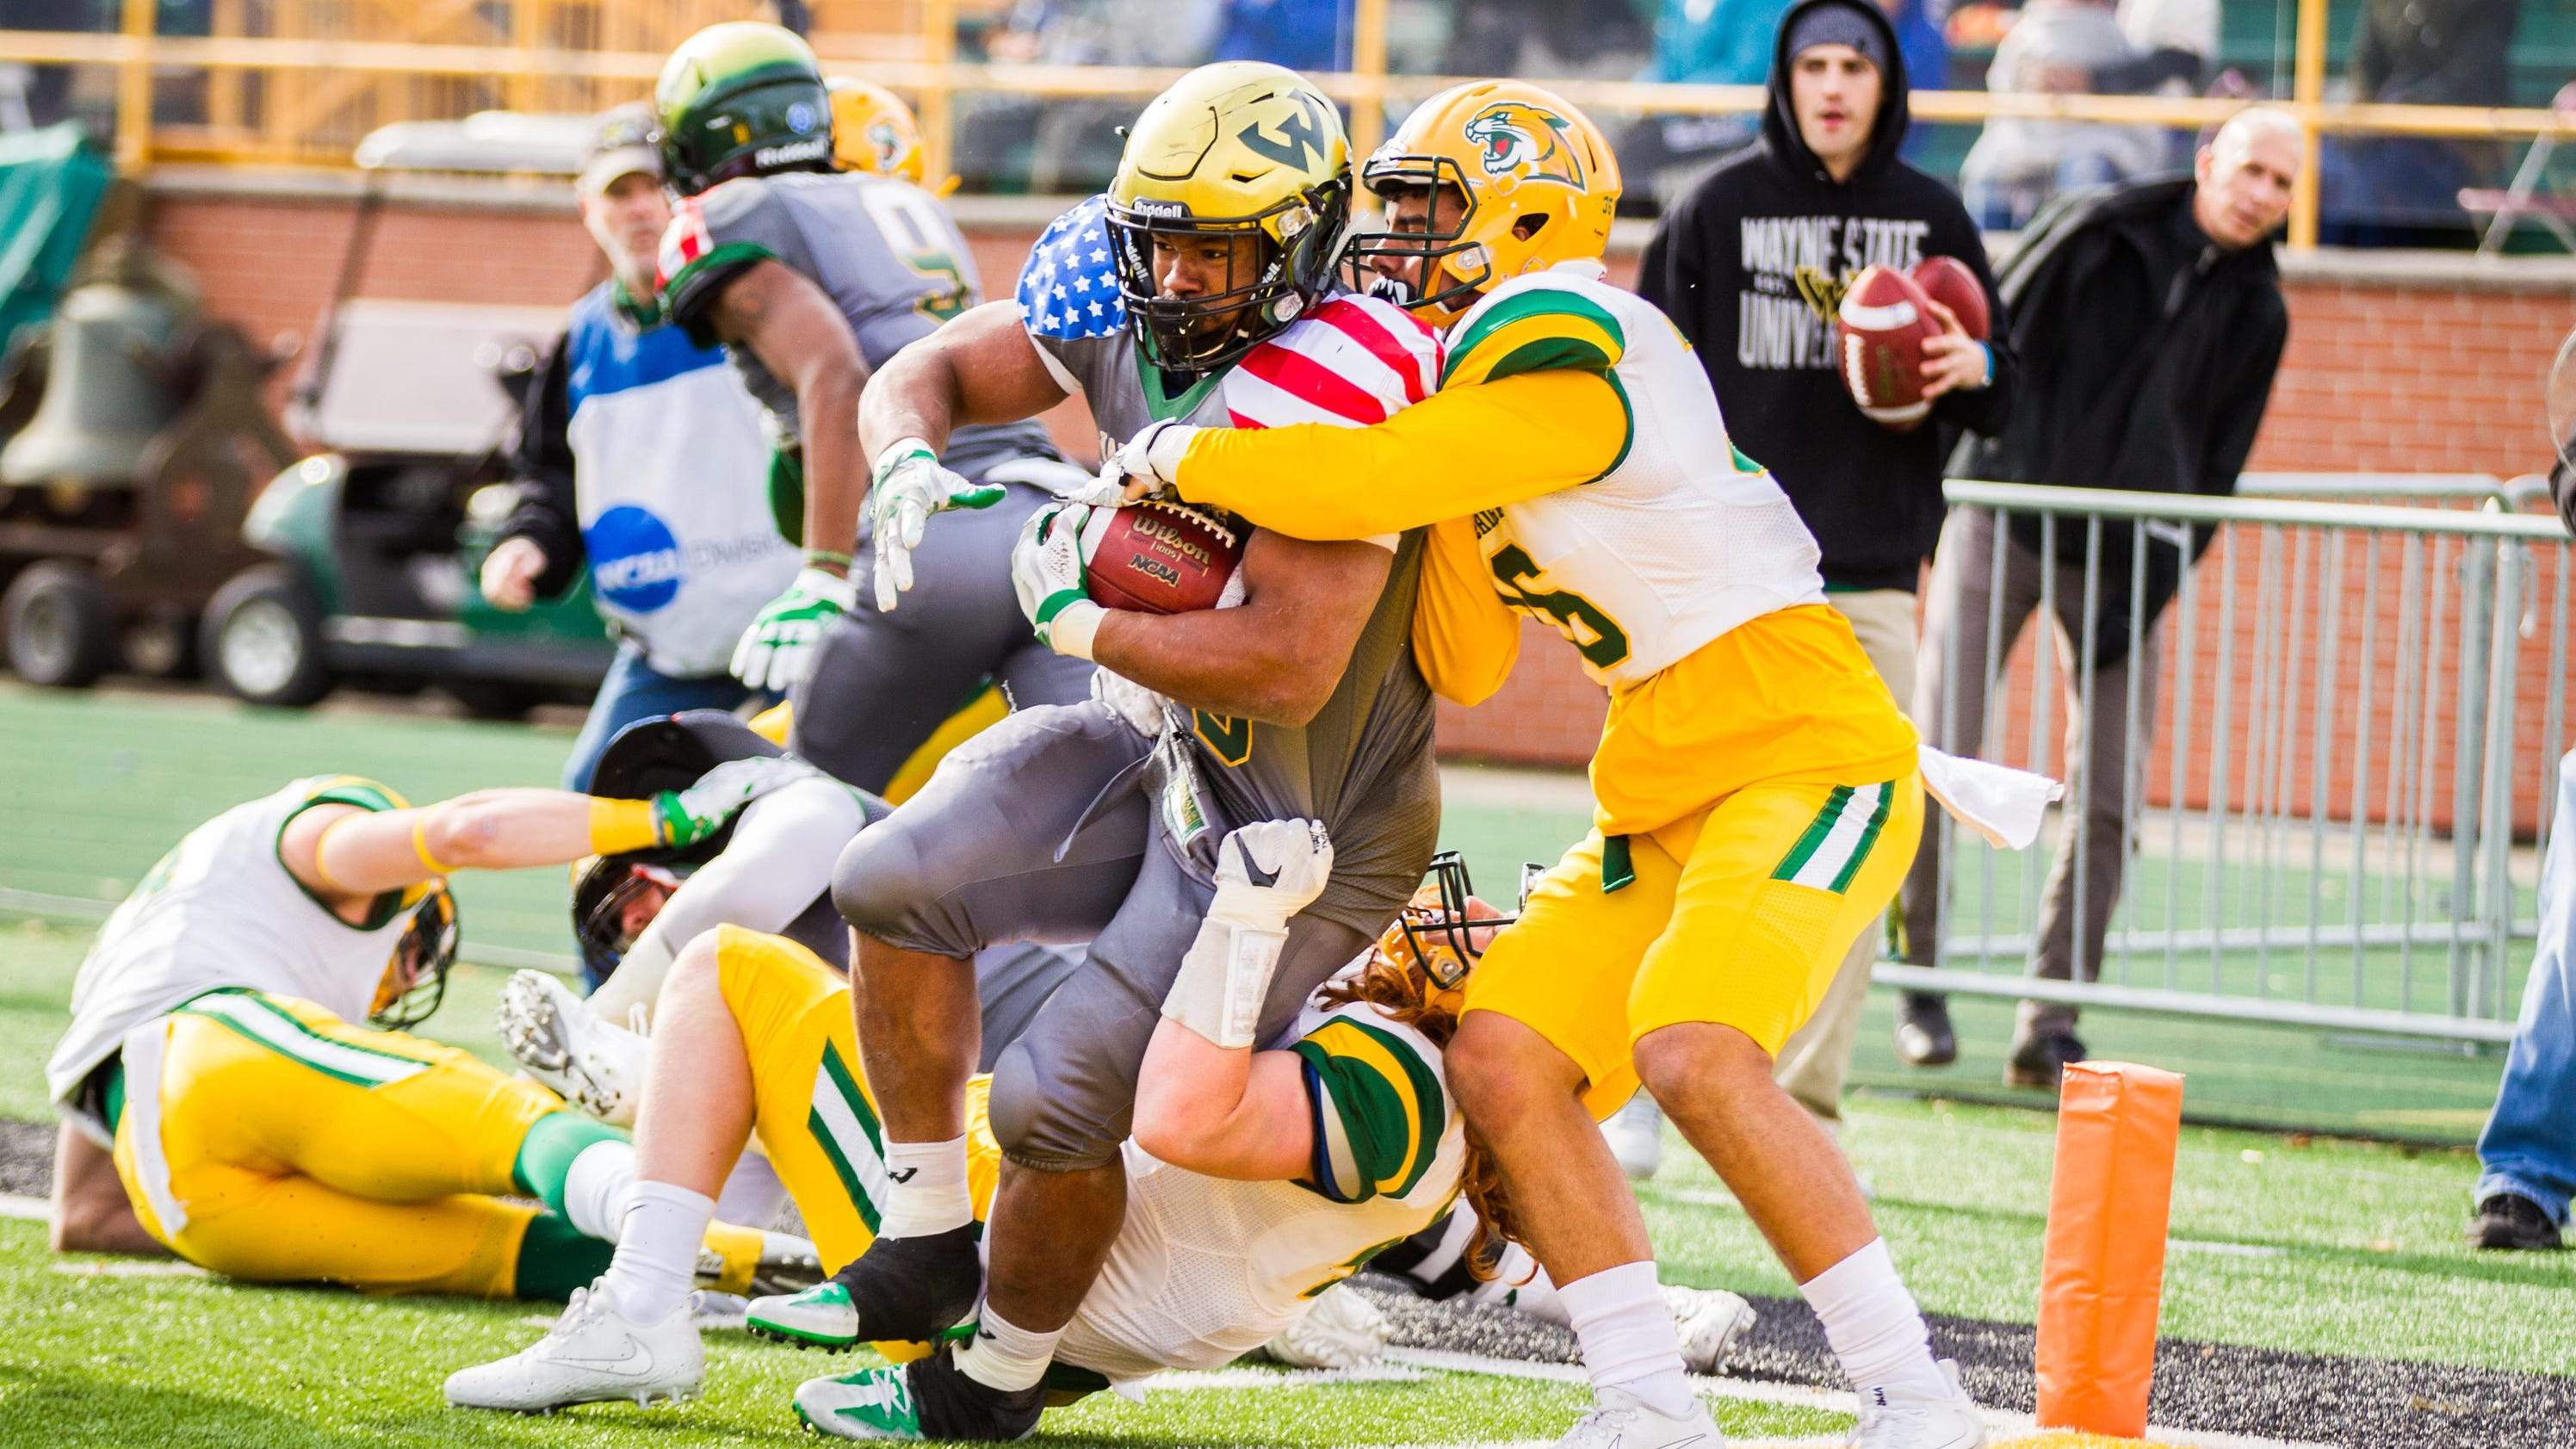 reputable site 0a0b4 e2f97 Myron Riley came up with an interception in the final seconds to secure  Wayne State s 26-24 win over visiting Northern Michigan in its home finale  at Tom ...